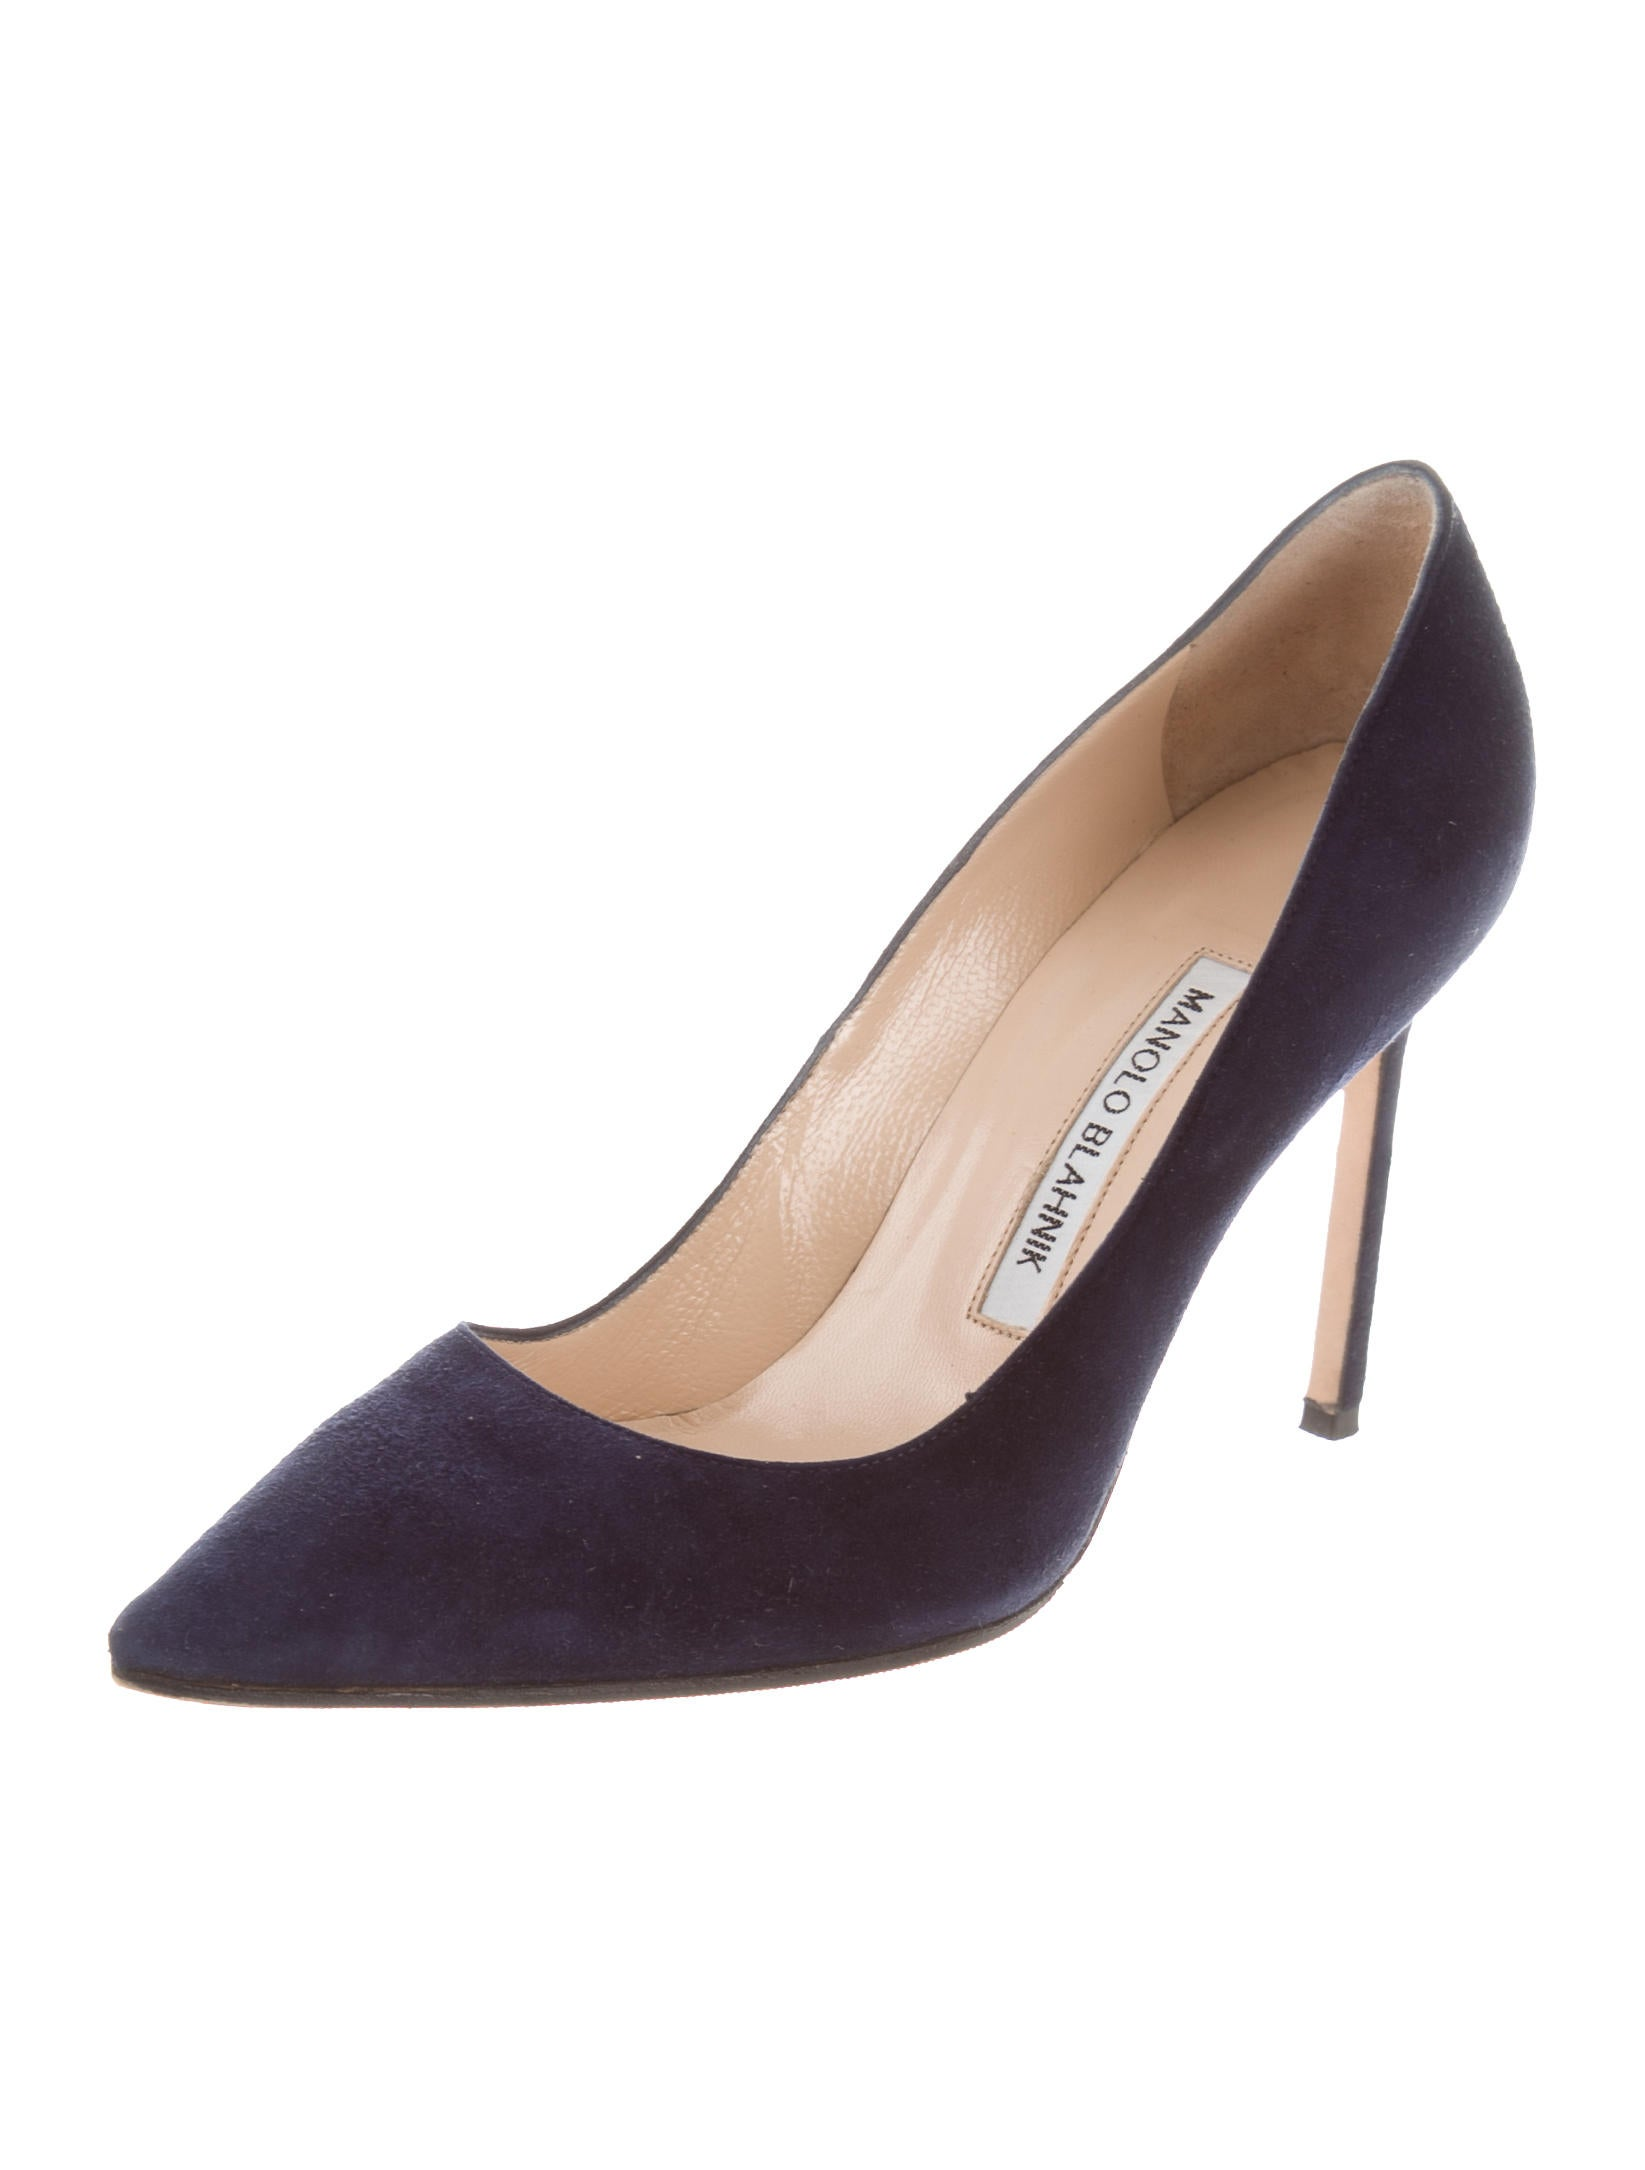 Manolo blahnik bb 105 pumps shoes moo71848 the realreal for Shoes by manolo blahnik